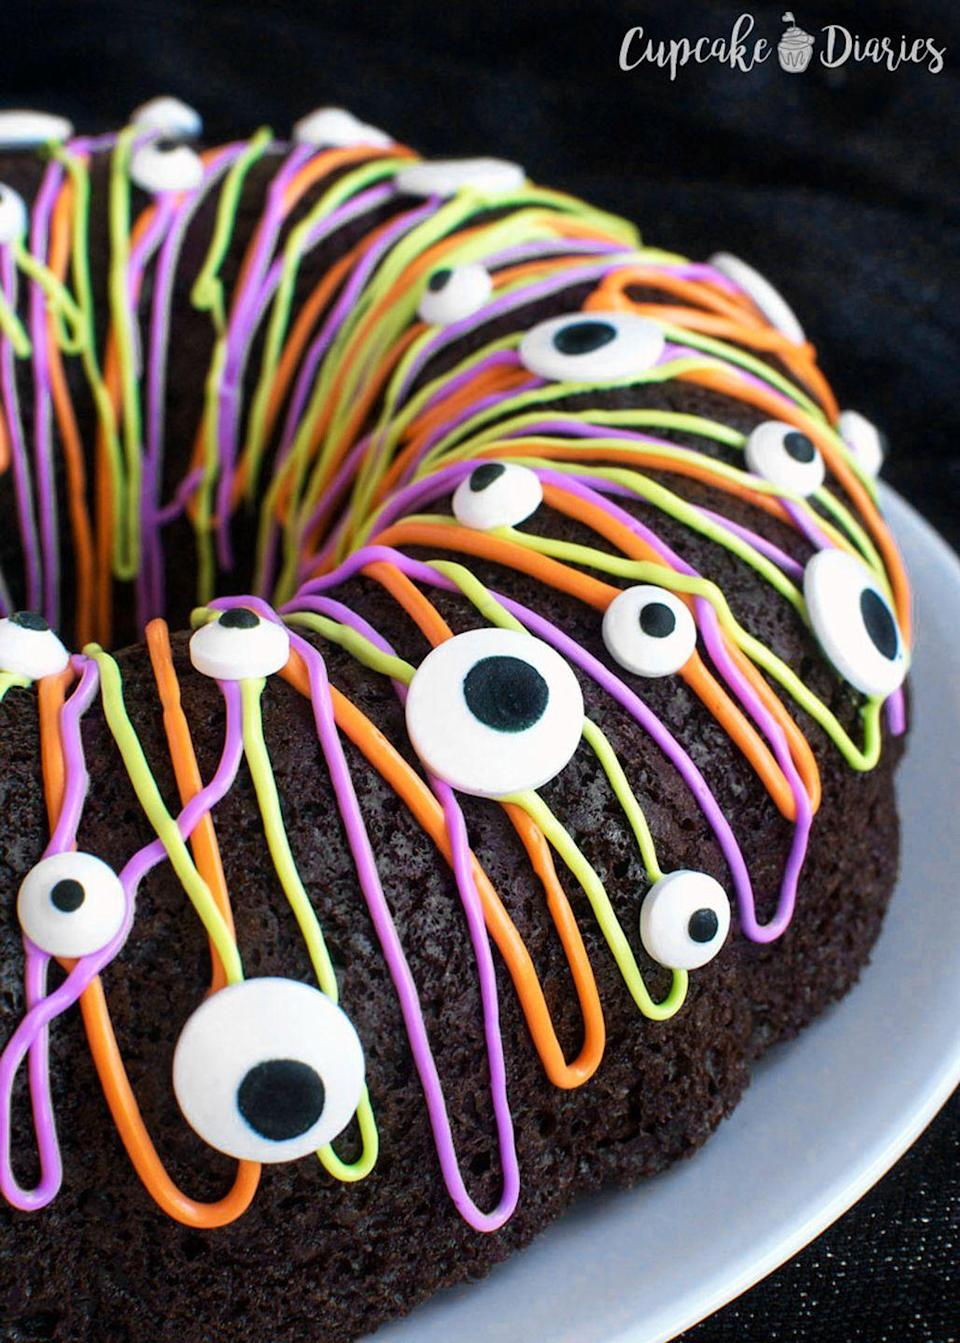 """<p>Kids will love decorating this chocolate cake with colorful icing and candy """"eyes.""""</p><p><strong>Get the recipe at <a href=""""https://www.cupcakediariesblog.com/2016/09/monster-bundt-cake.html?utm_content=buffer35bc7&utm_medium=social&utm_source=pinterest.com&utm_campaign=buffer"""" rel=""""nofollow noopener"""" target=""""_blank"""" data-ylk=""""slk:Cupcake Diaries"""" class=""""link rapid-noclick-resp"""">Cupcake Diaries</a>.</strong> </p>"""